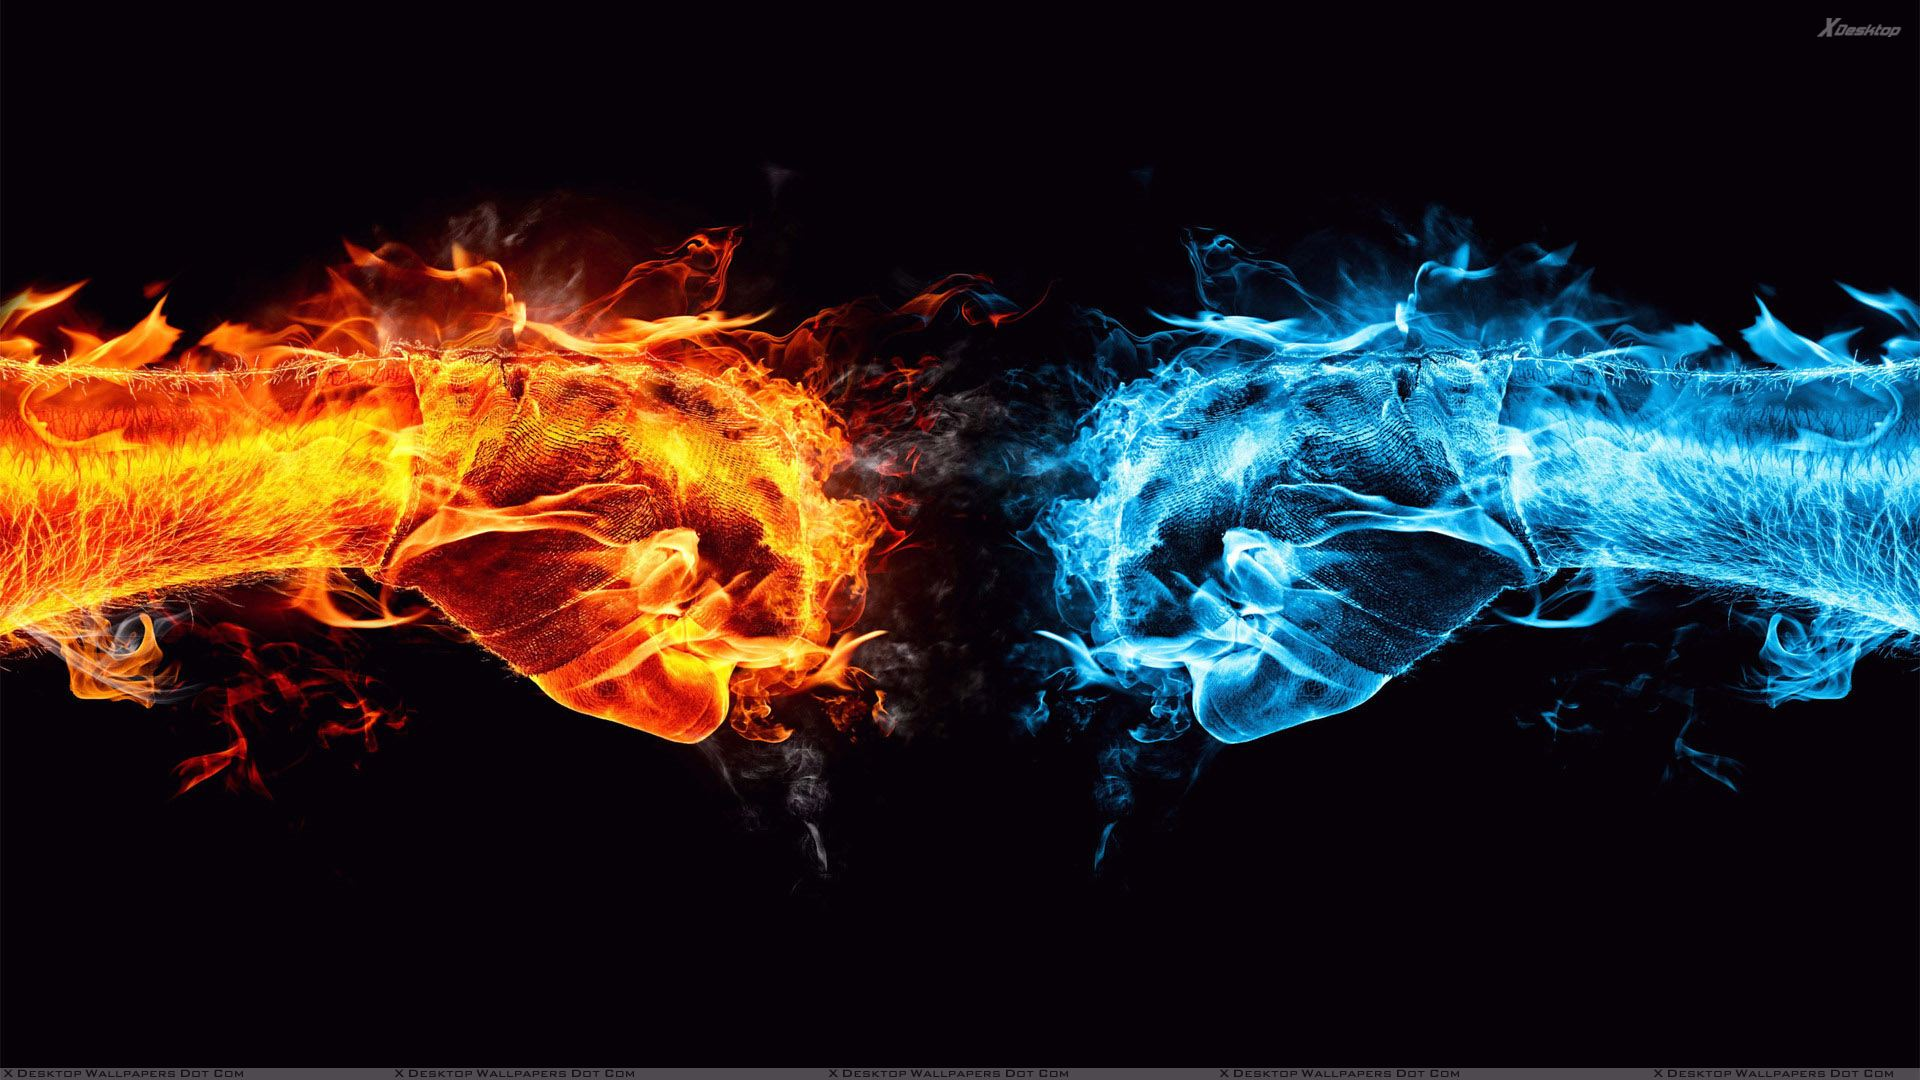 Hot Backgrounds HD 6970763 1920x1080